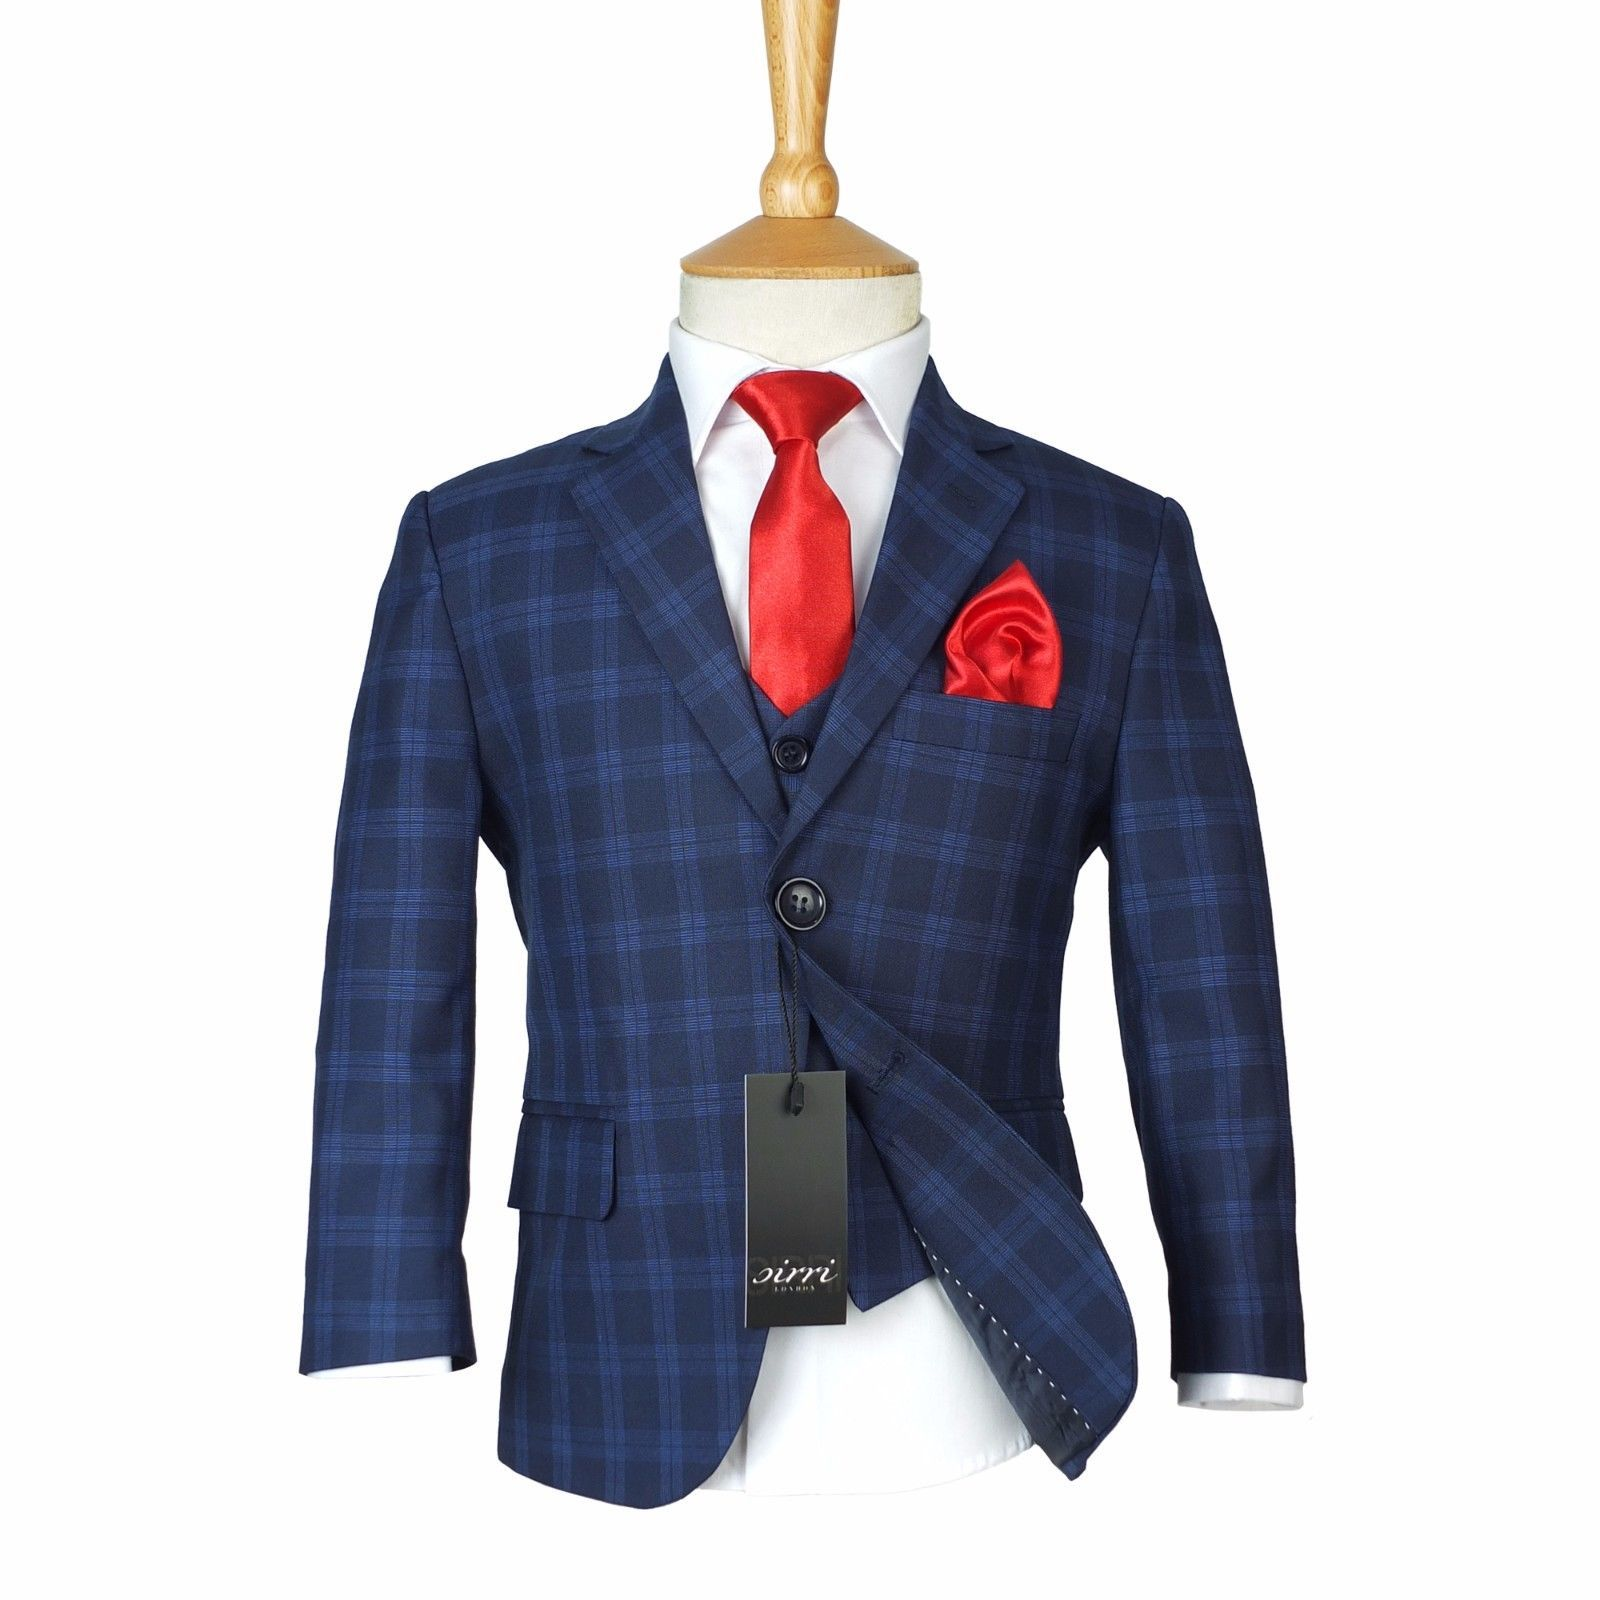 Boys Suits Boys Navy Suit Boys Check Suits Page Boy Wedding Prom Formal Suit